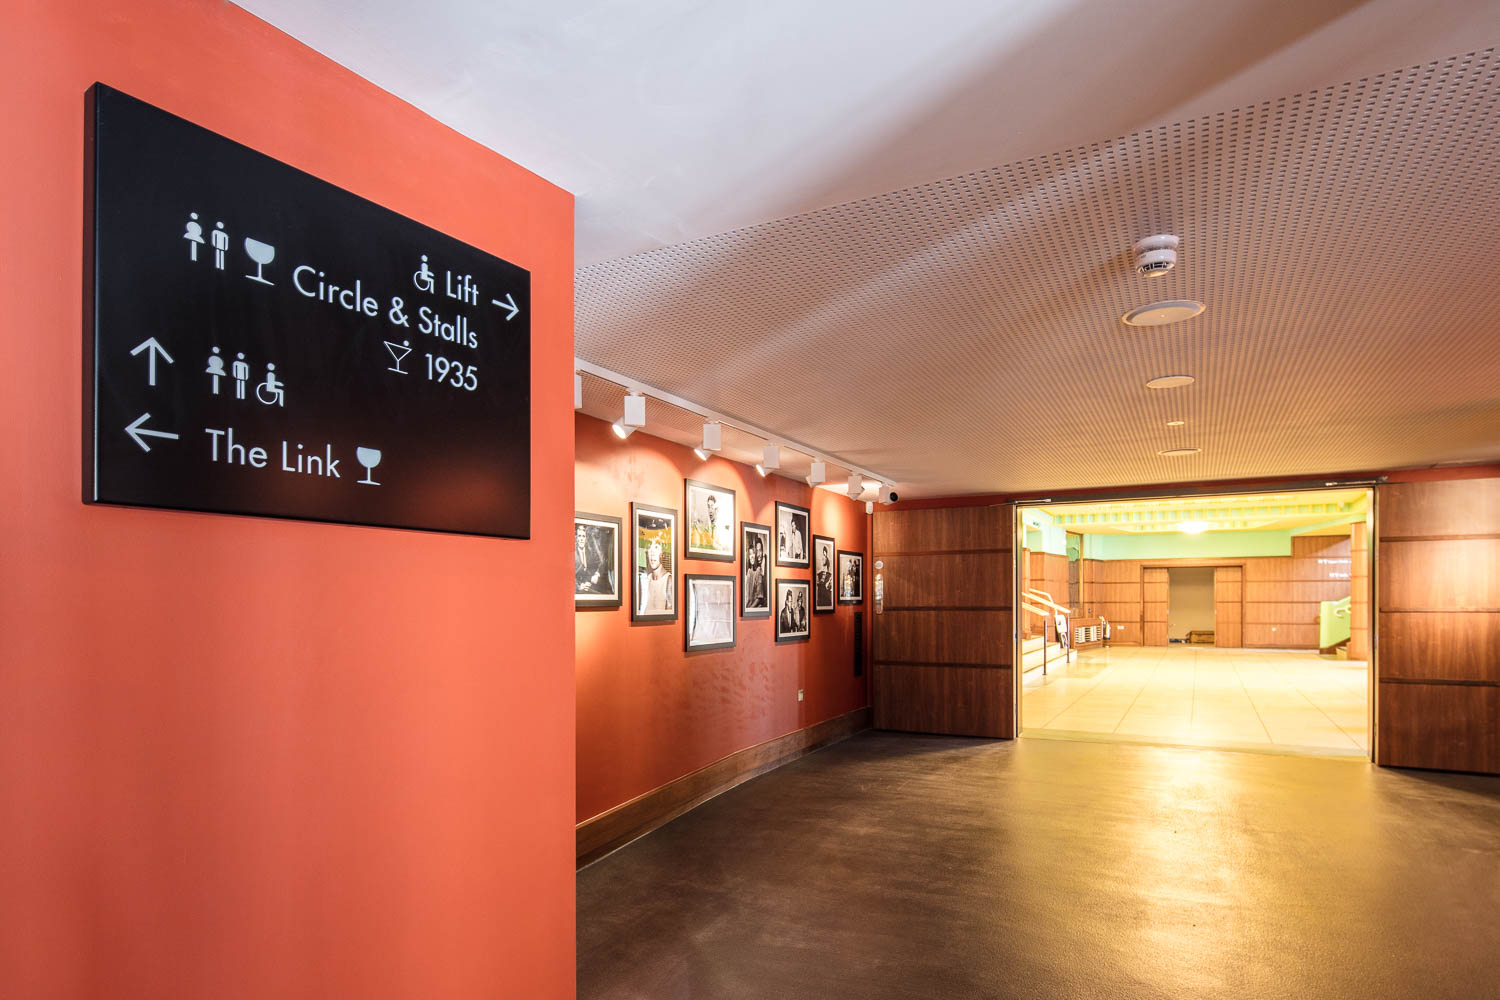 wayfinding within The Link